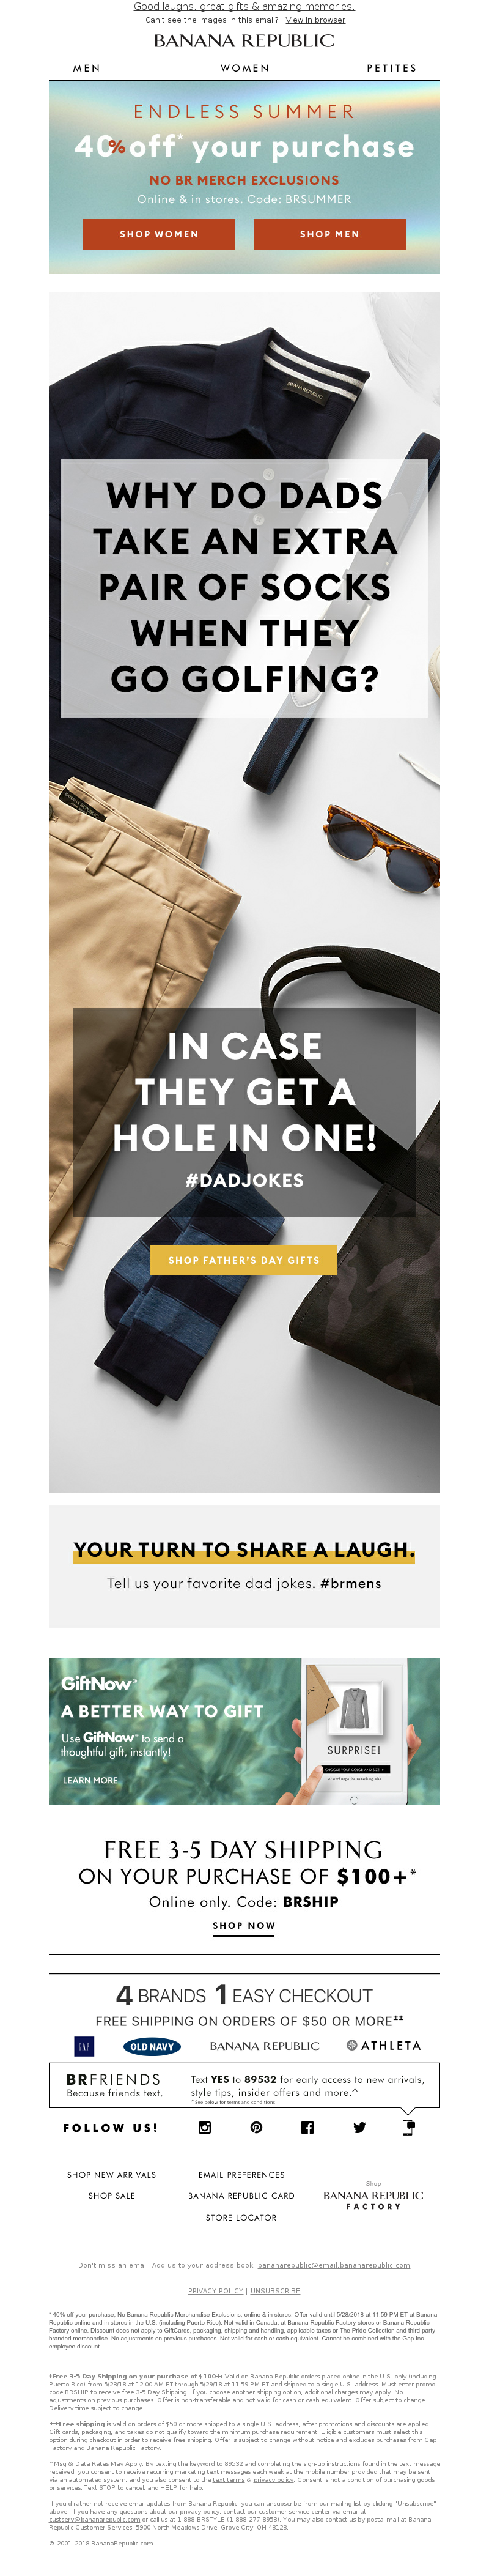 father's day email example from Banana Republic